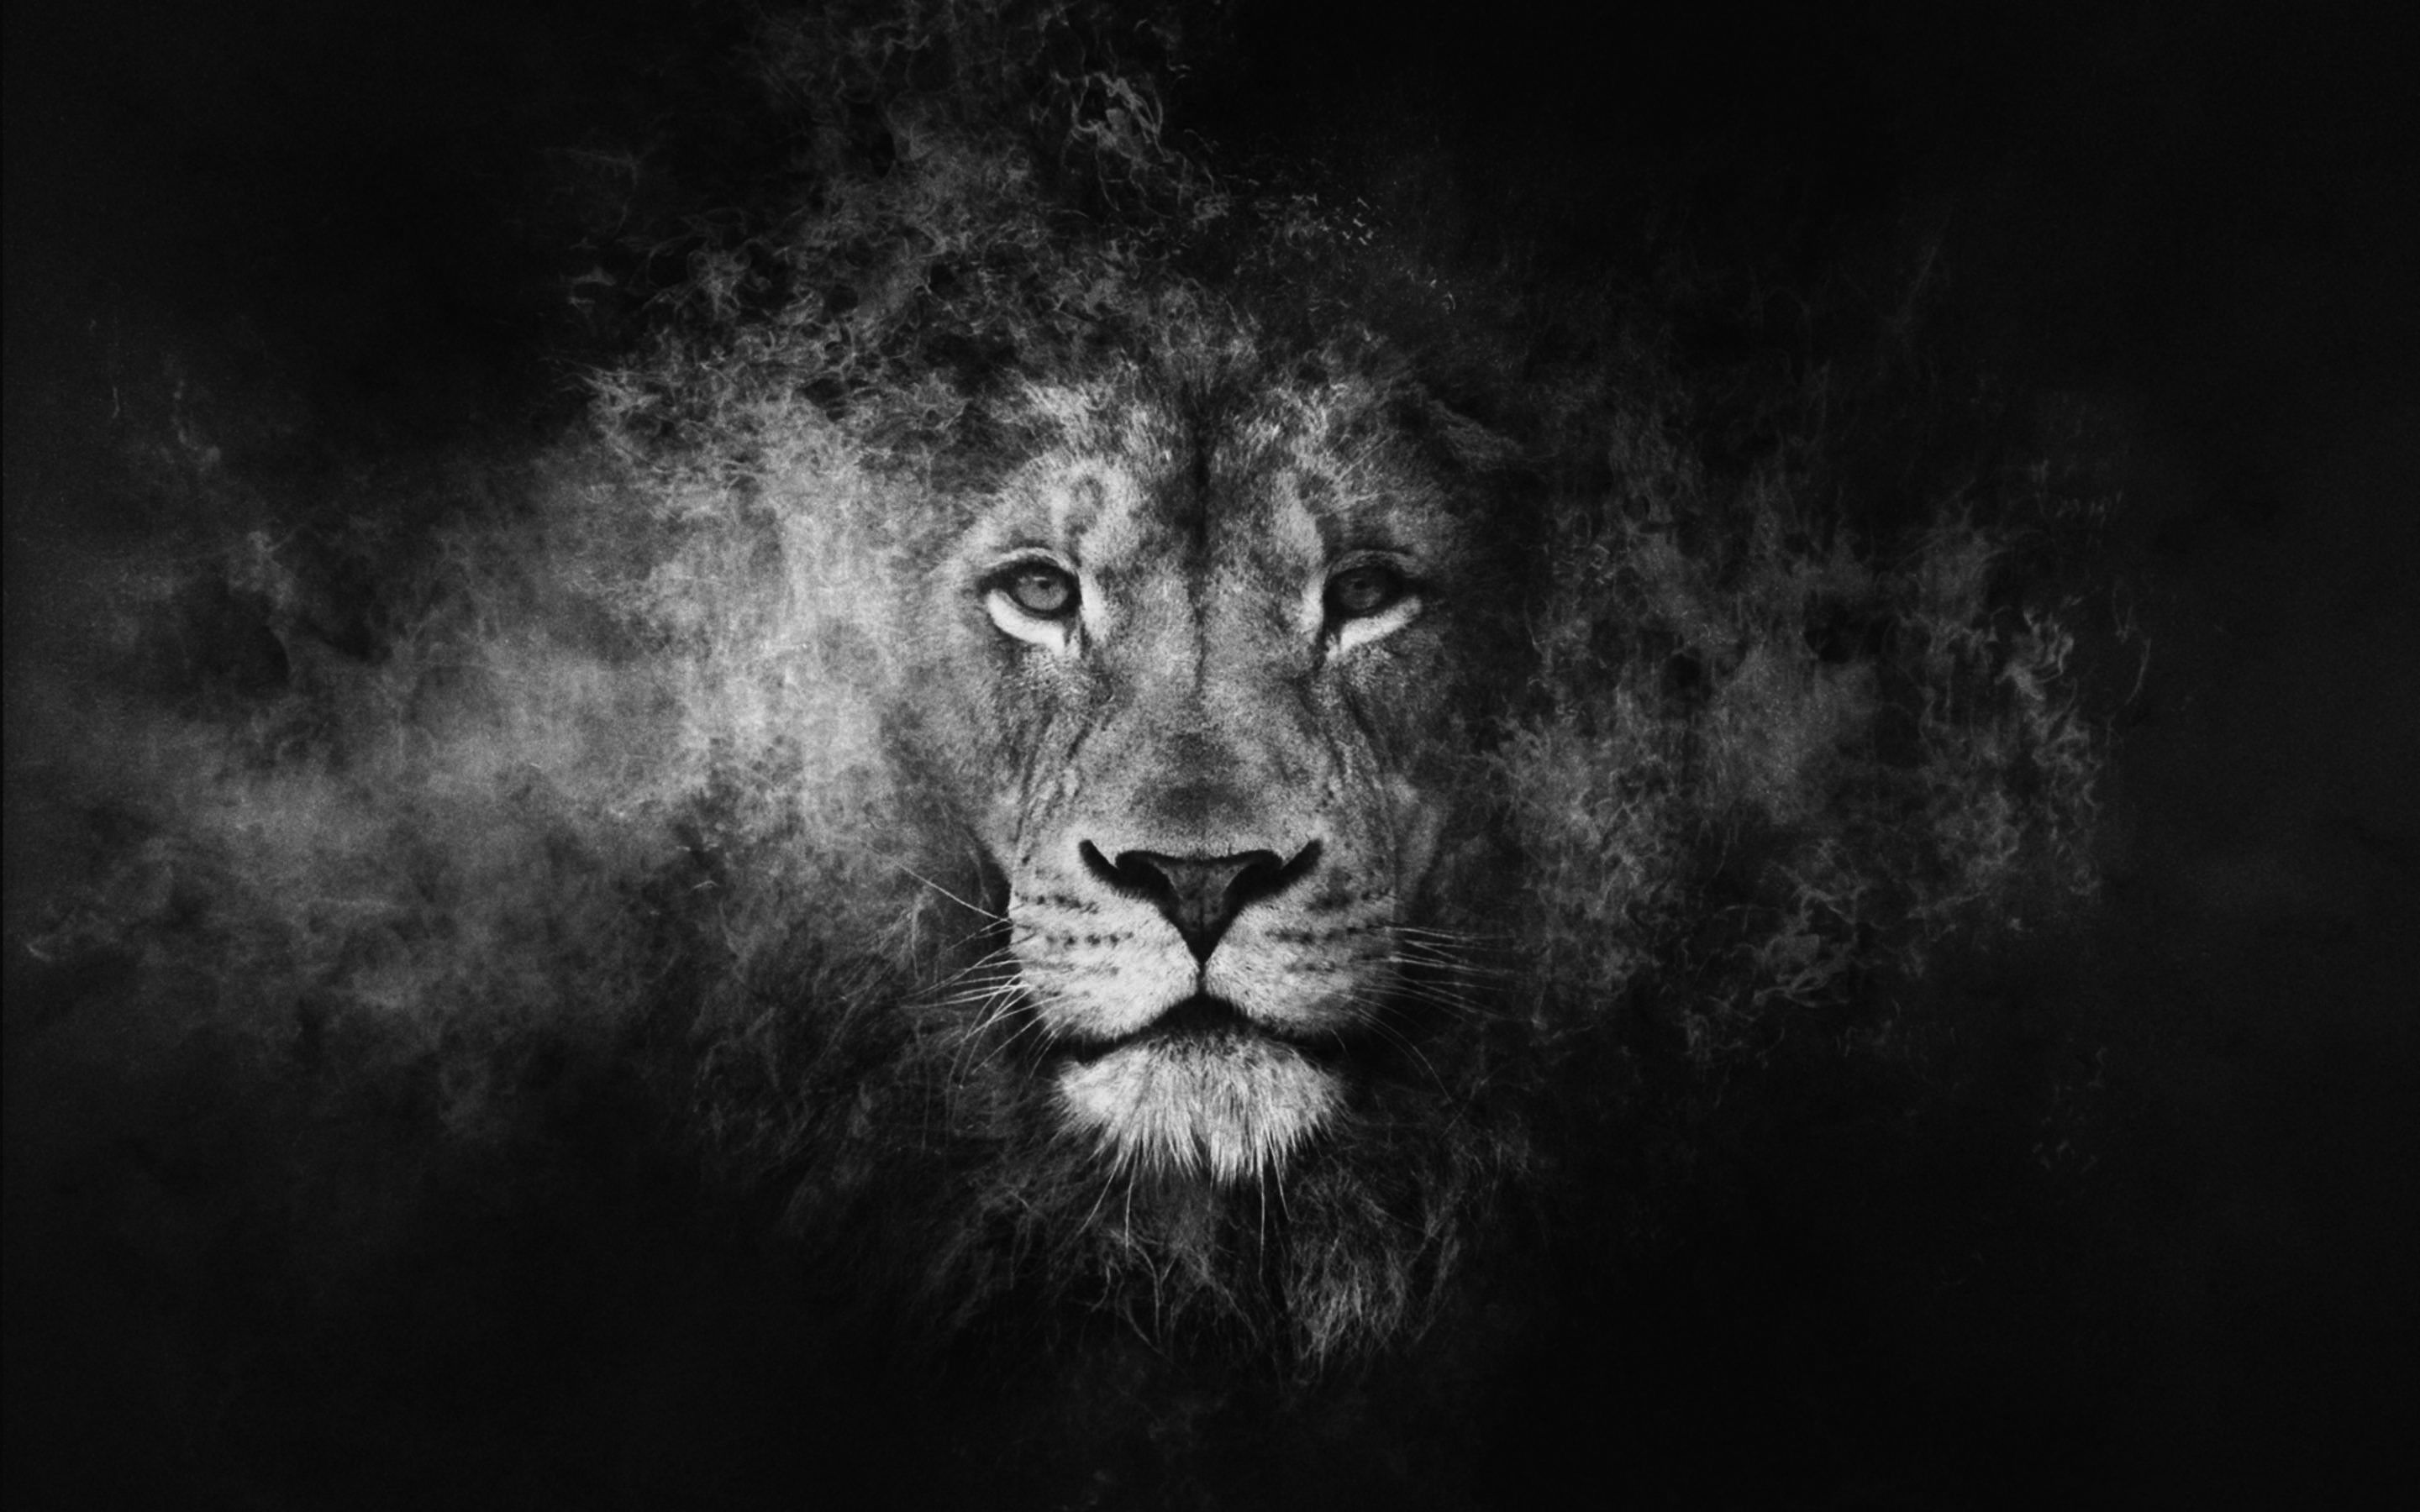 Lion Black And White Wallpaper Phone On Wallpaper 1080p Hd Leao De Fogo Papel De Parede De Arte Quadros Pintados